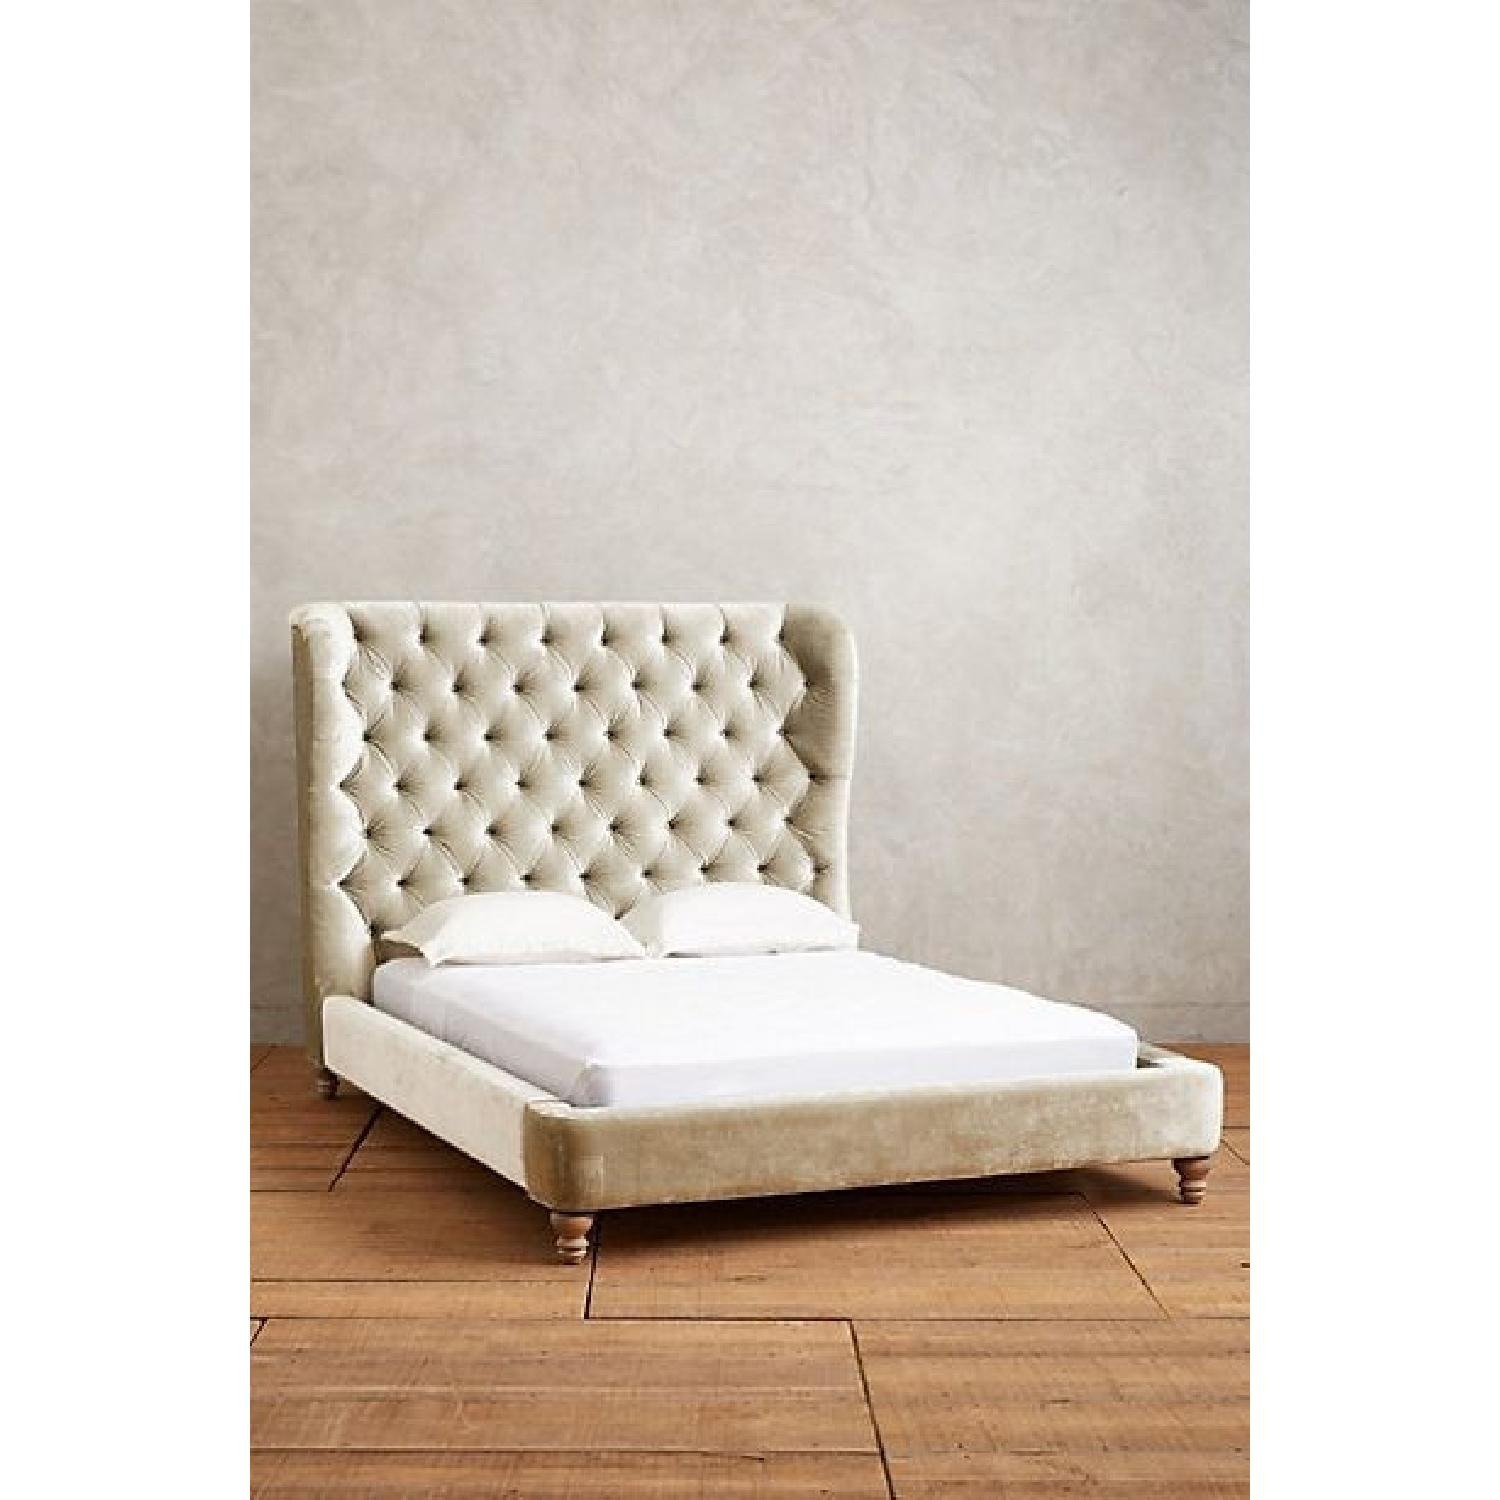 Anthropologie Velvet Tufted Wingback Bed - image-7